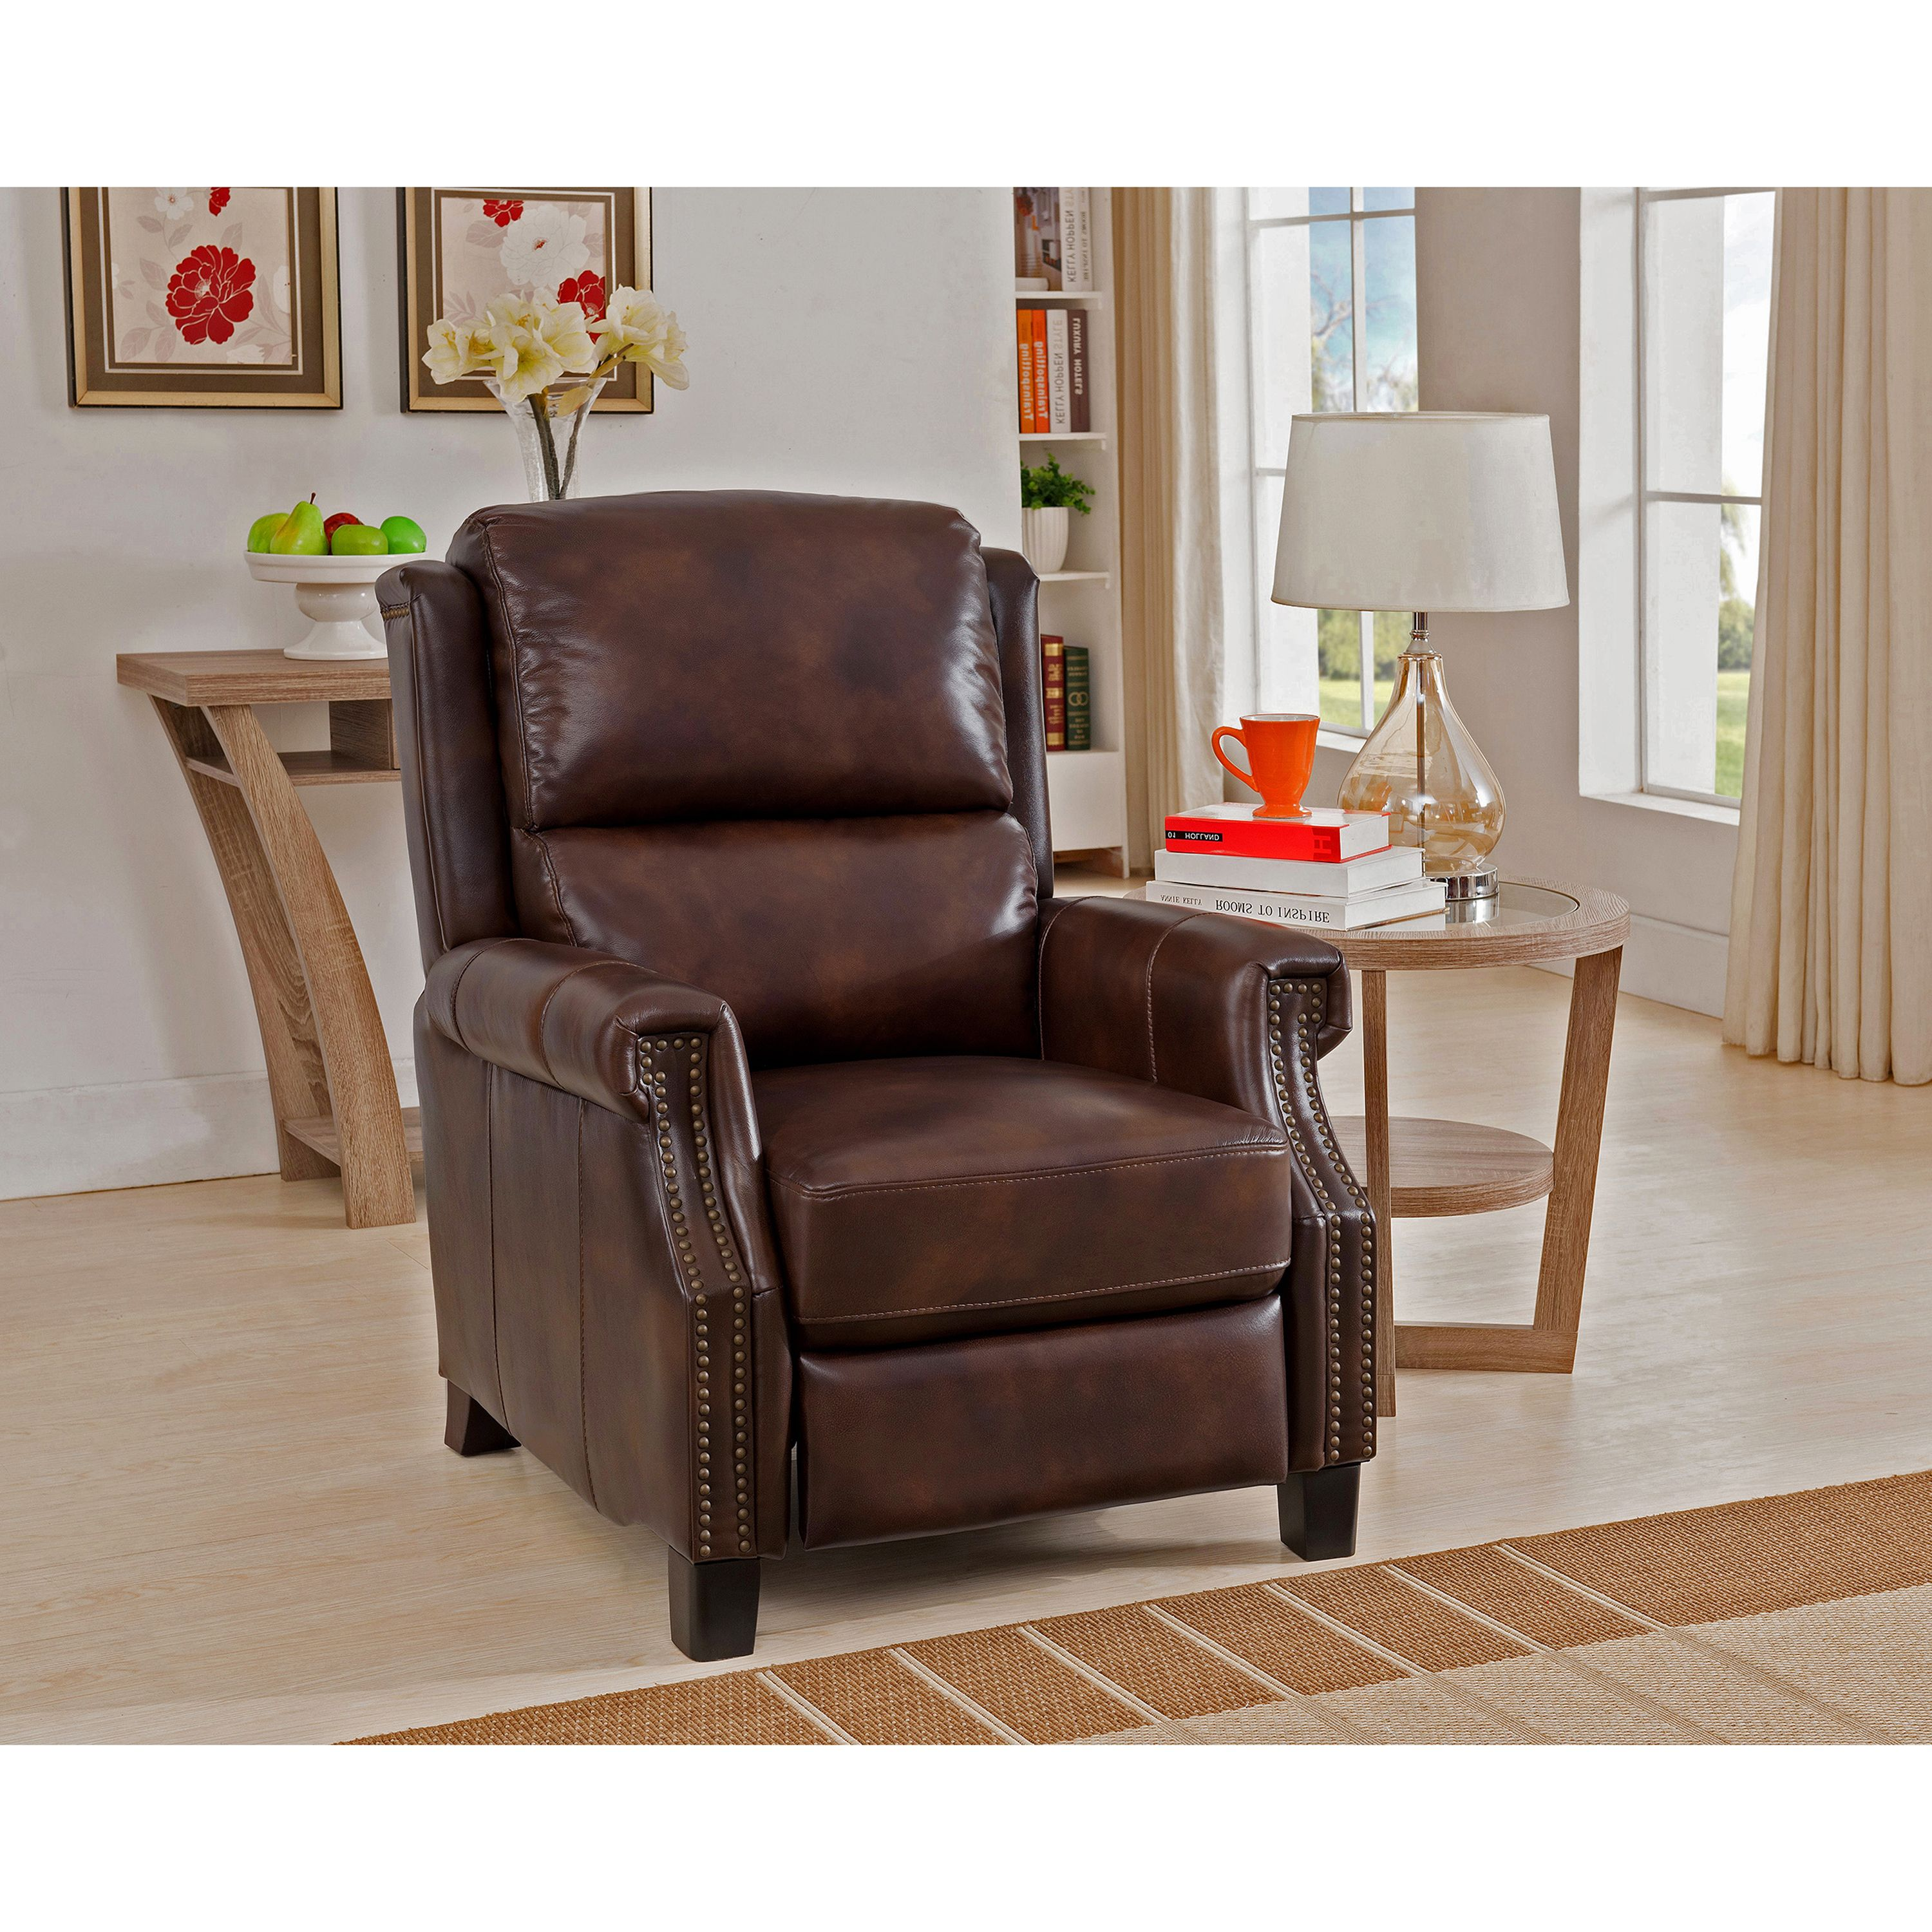 Rivington Brown Premium Top Grain Italian Leather Recliner Chair | Overstock.com Shopping - The Best Deals on Recliners  sc 1 st  Pinterest & Rivington Brown Premium Top Grain Italian Leather Recliner Chair ...